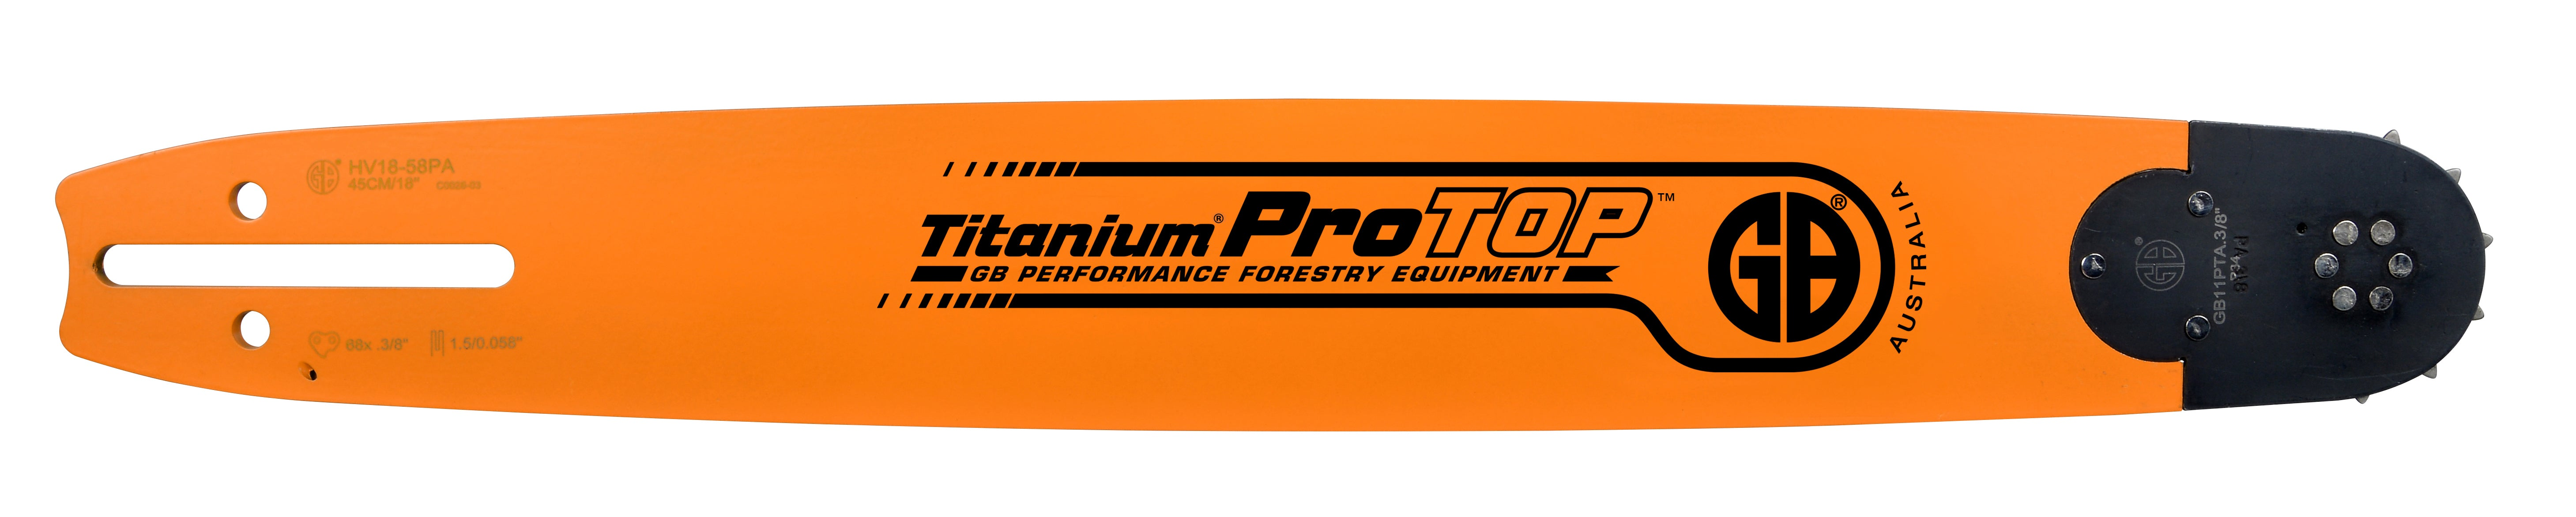 GB Titanium®ProTOP K095 Chainsaw Bar UHLX18-50PA